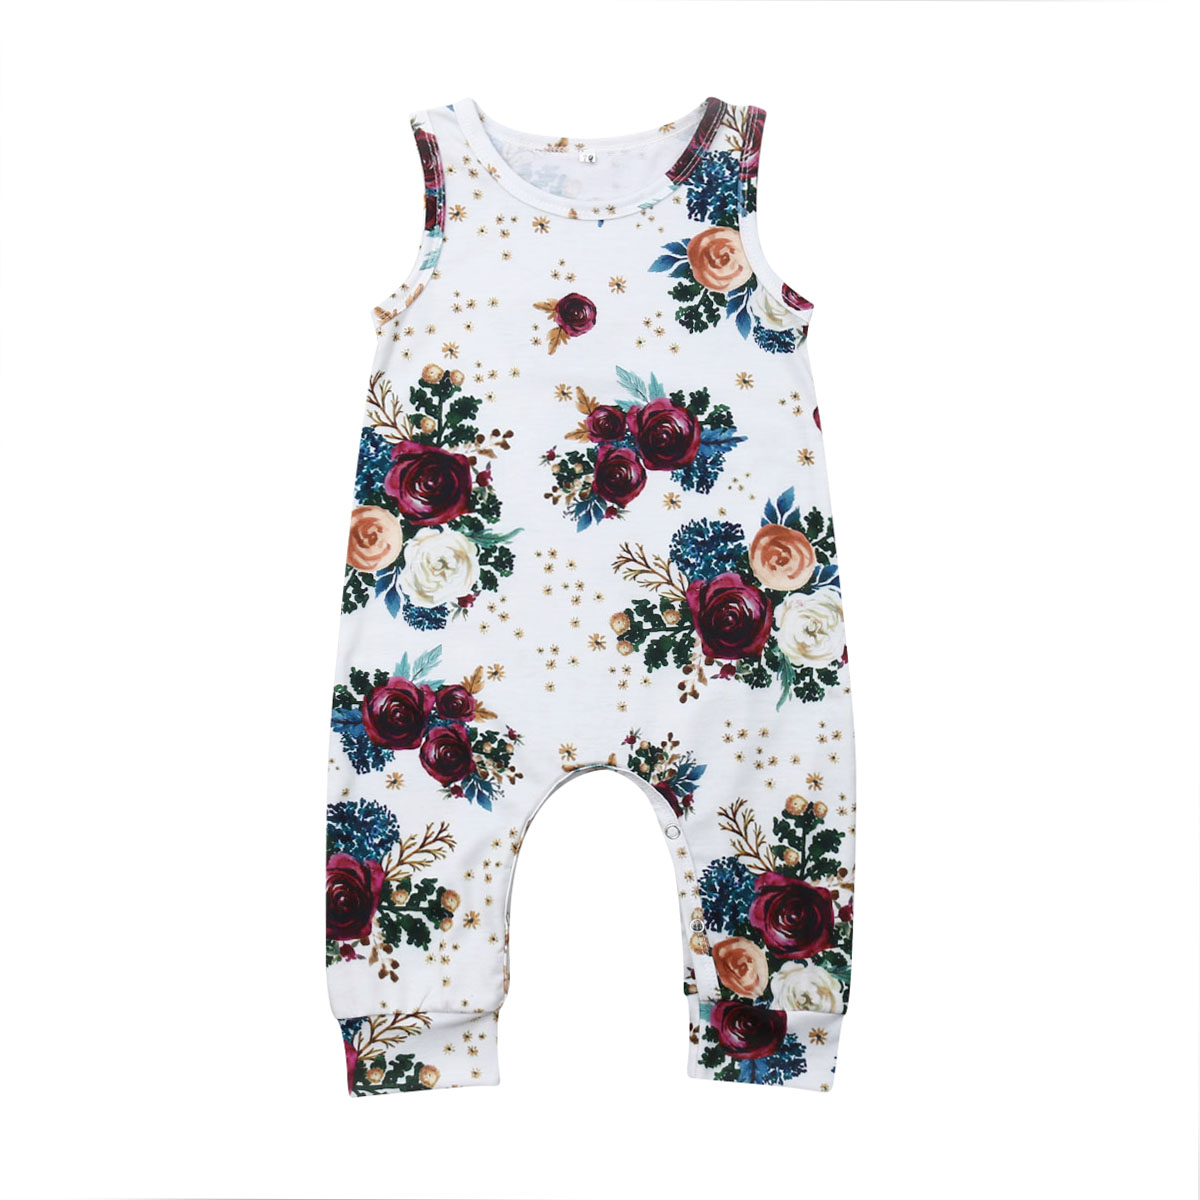 Newborn Infant Baby Girl Clothes Sleeveless   Romper   Jumpsuit Summer Outfit